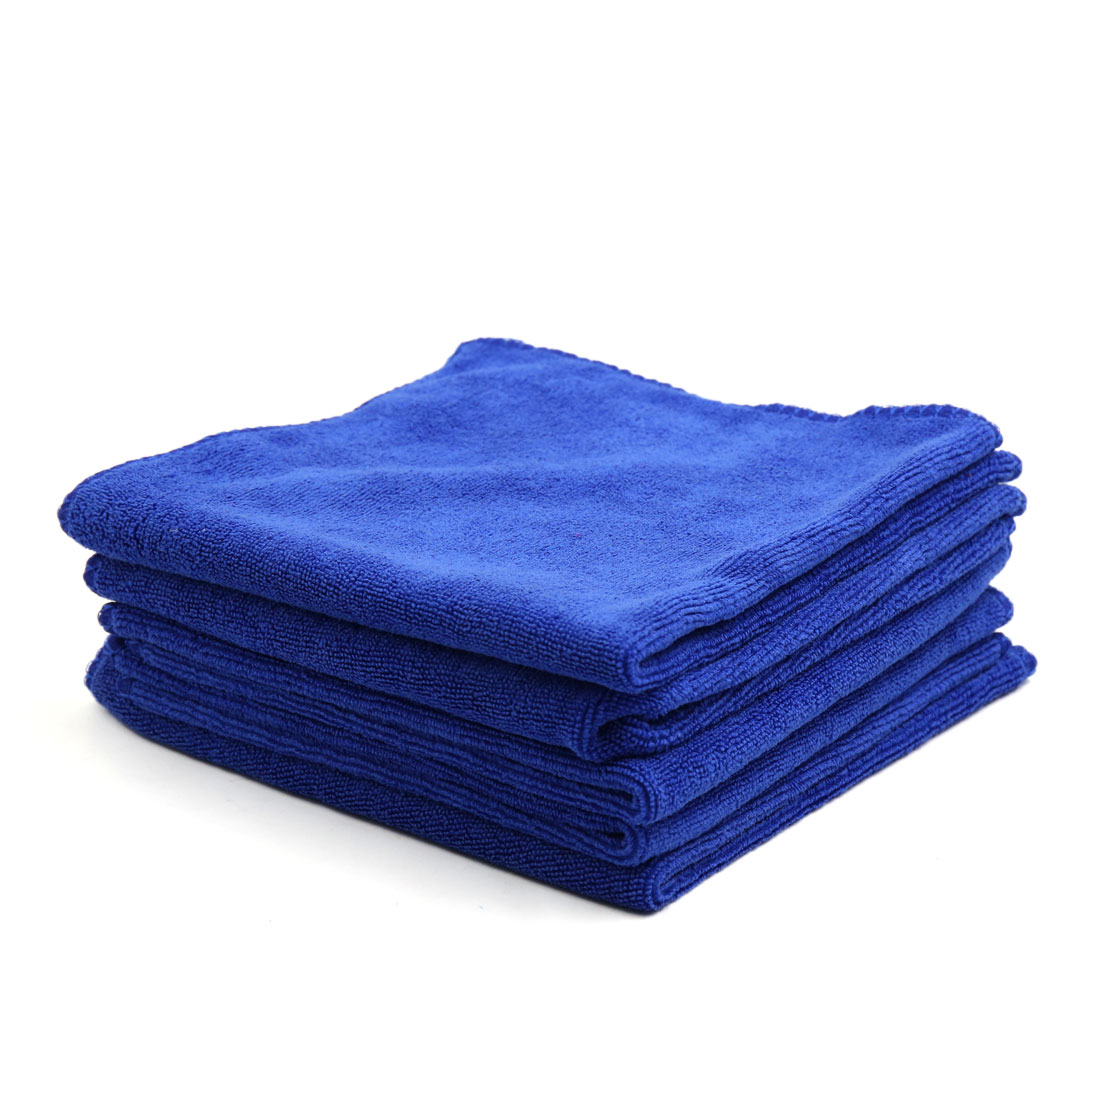 5pcs 400GSM 33 x 33cm Blue Microfiber Polishing Cleaning Towel for Car Home